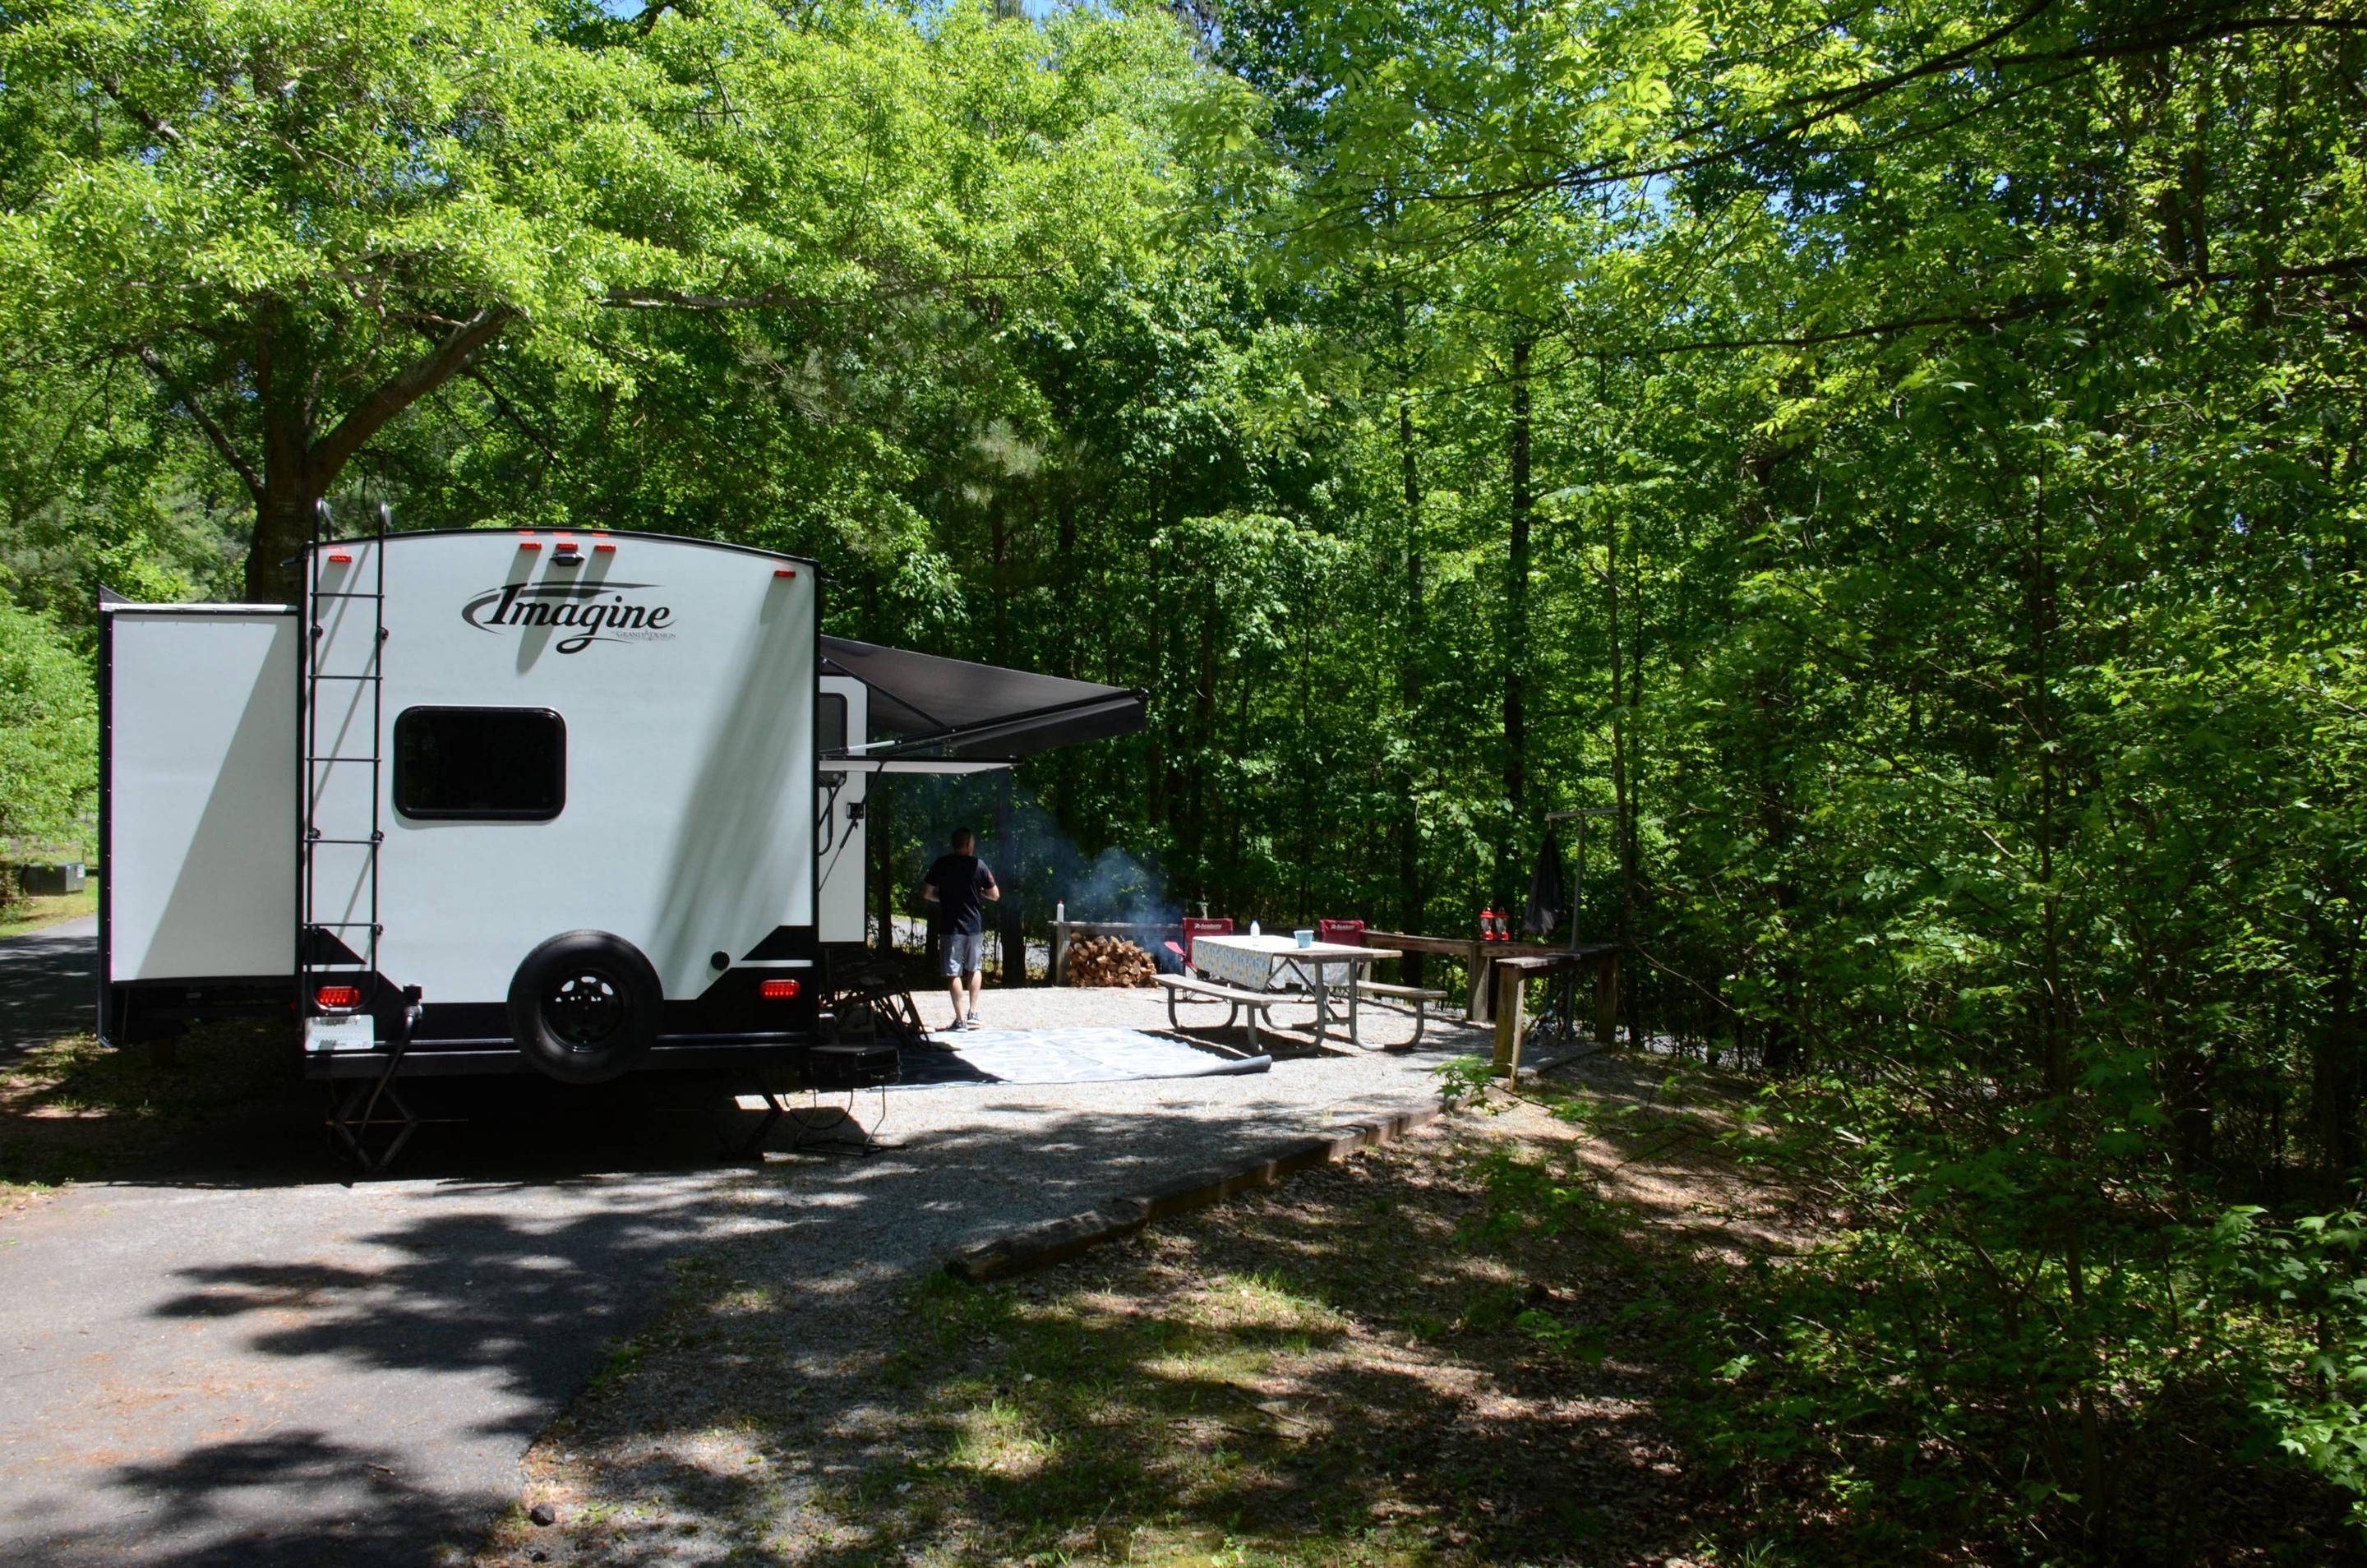 Campsite view, awning-side clearance.McKinney Campground, campsite 117.